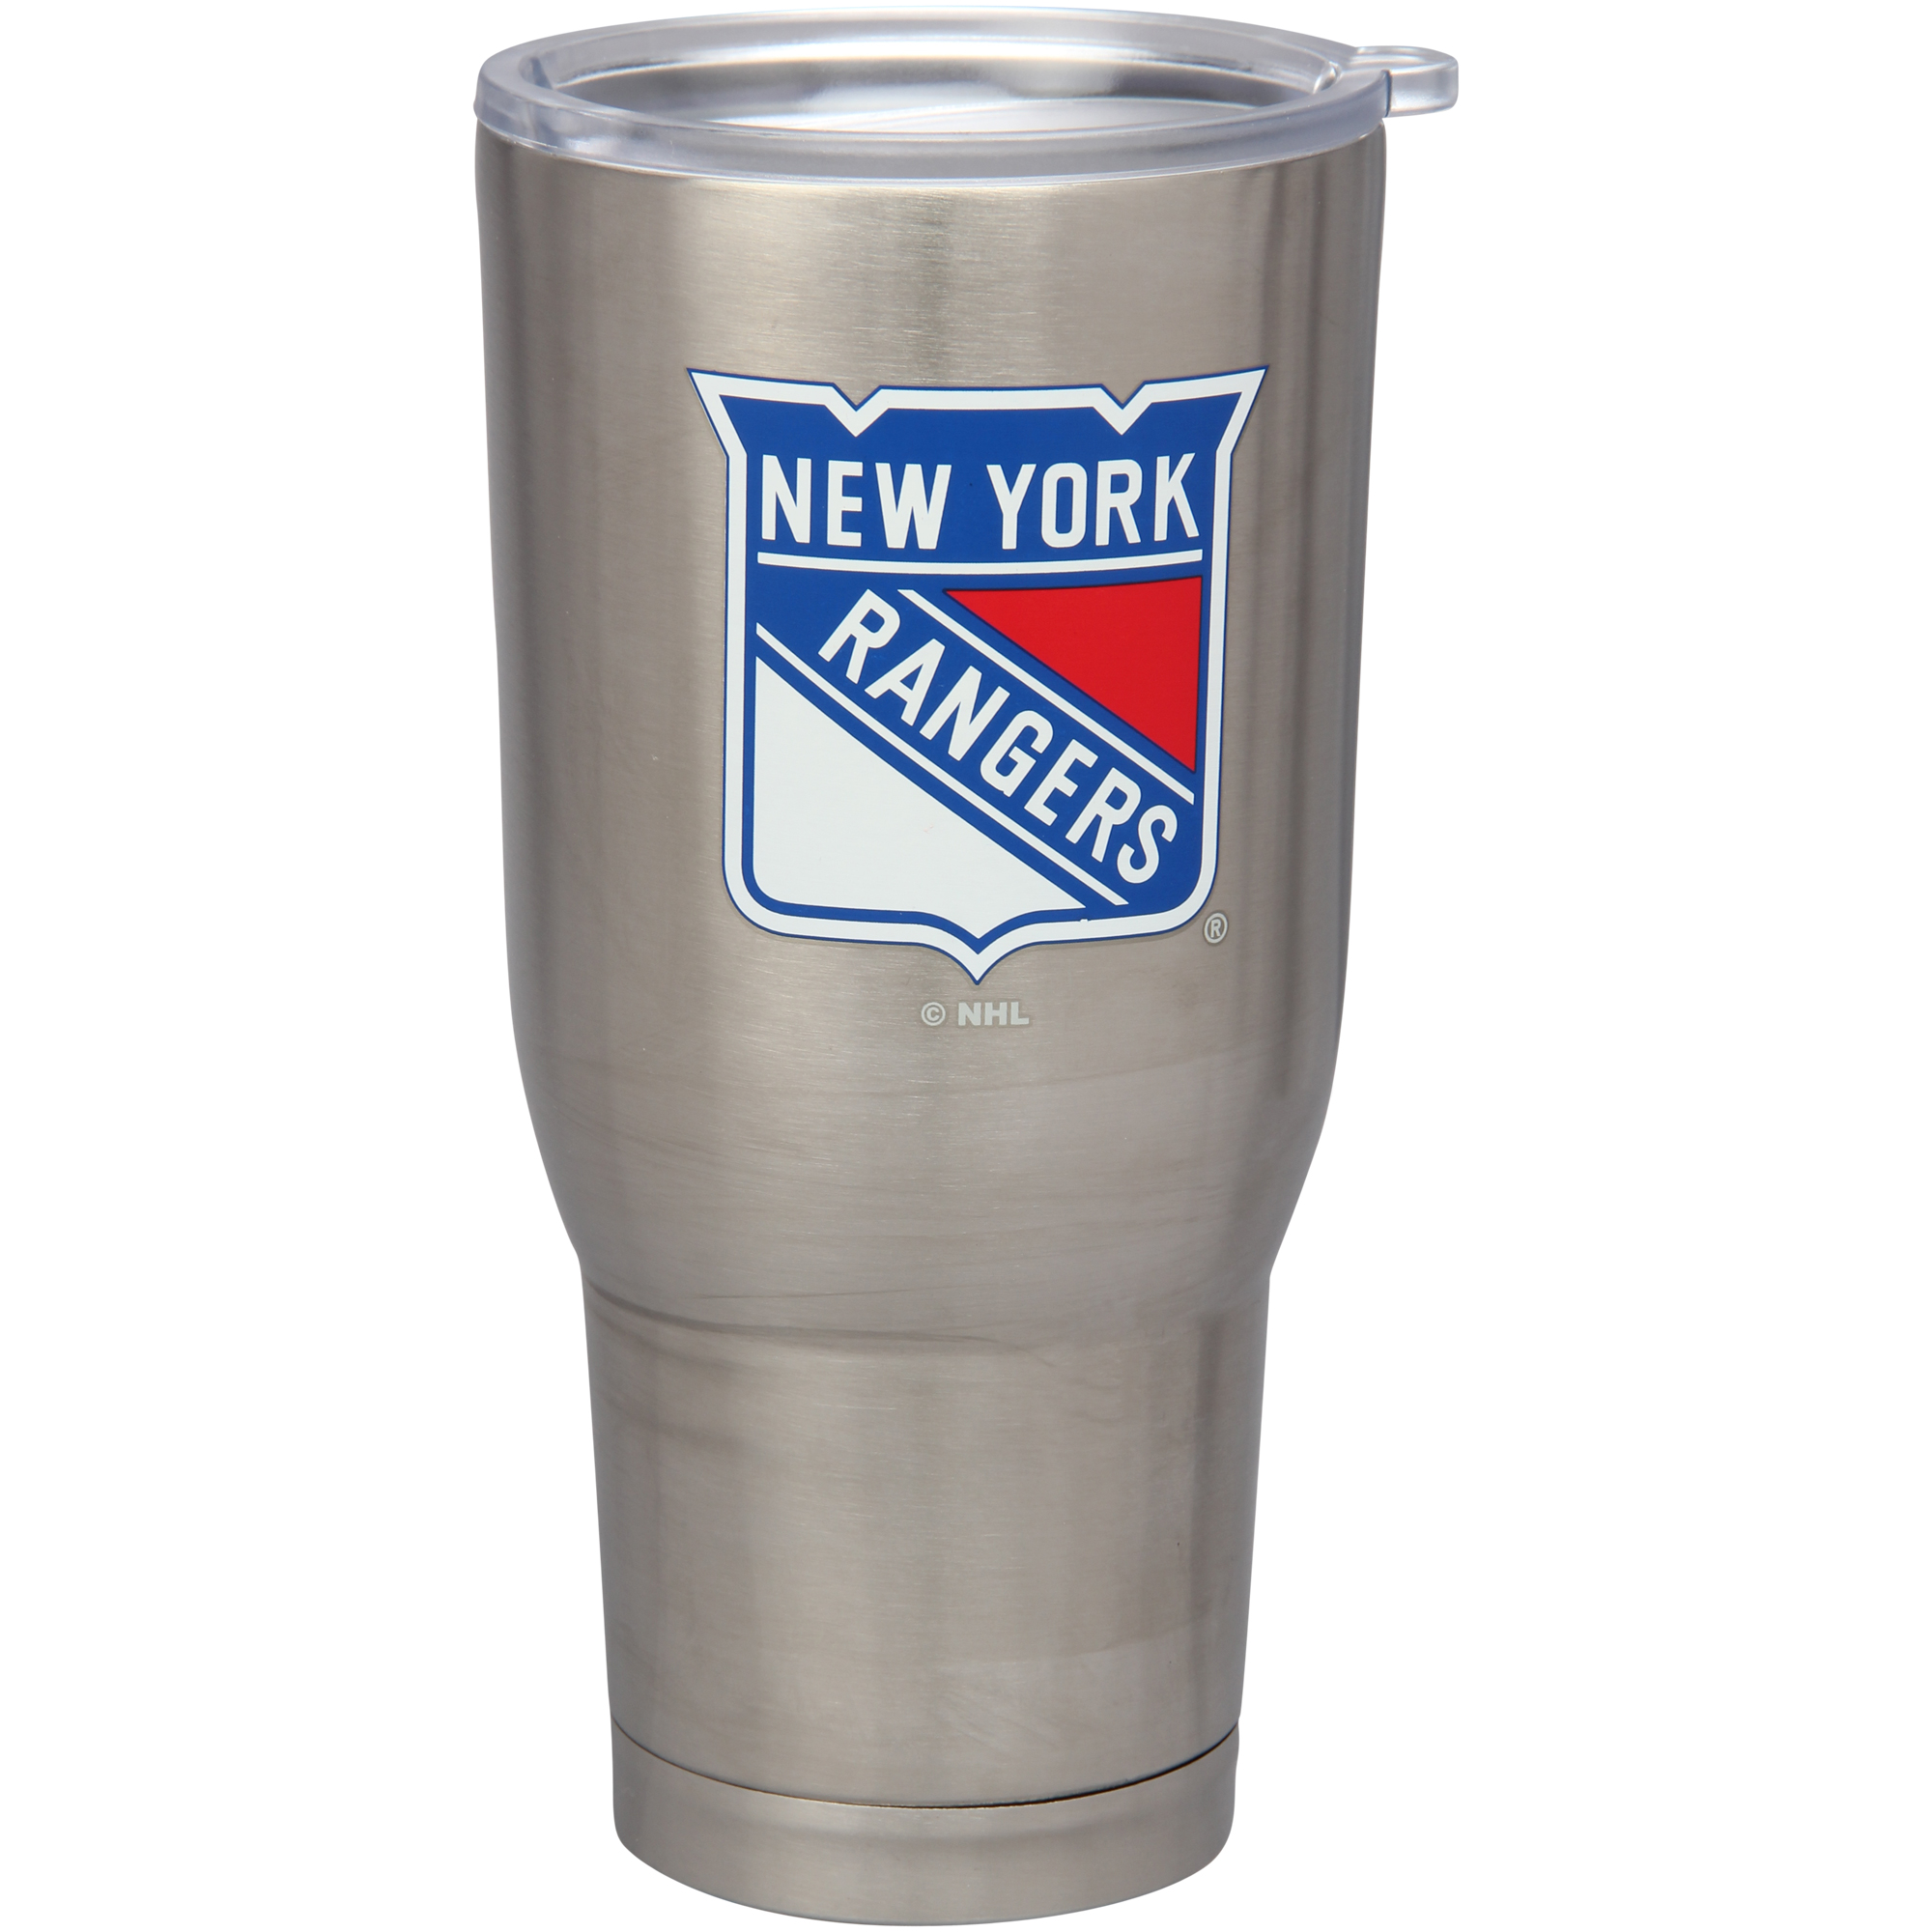 New York Rangers 32oz. Stainless Steel Keeper Tumbler - No Size